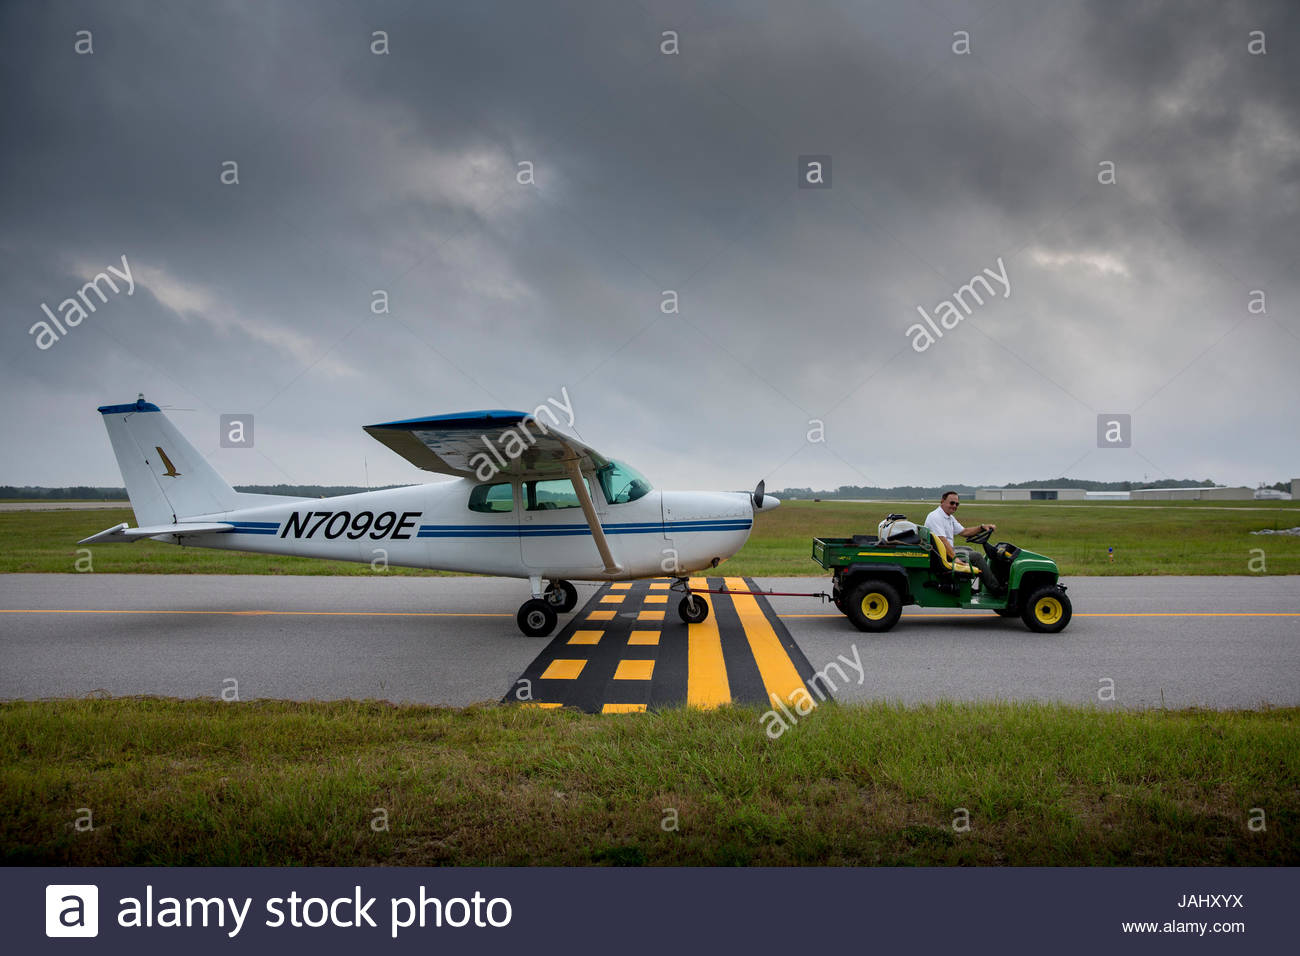 A broken down airplane being towed back to hangar. - Stock Image